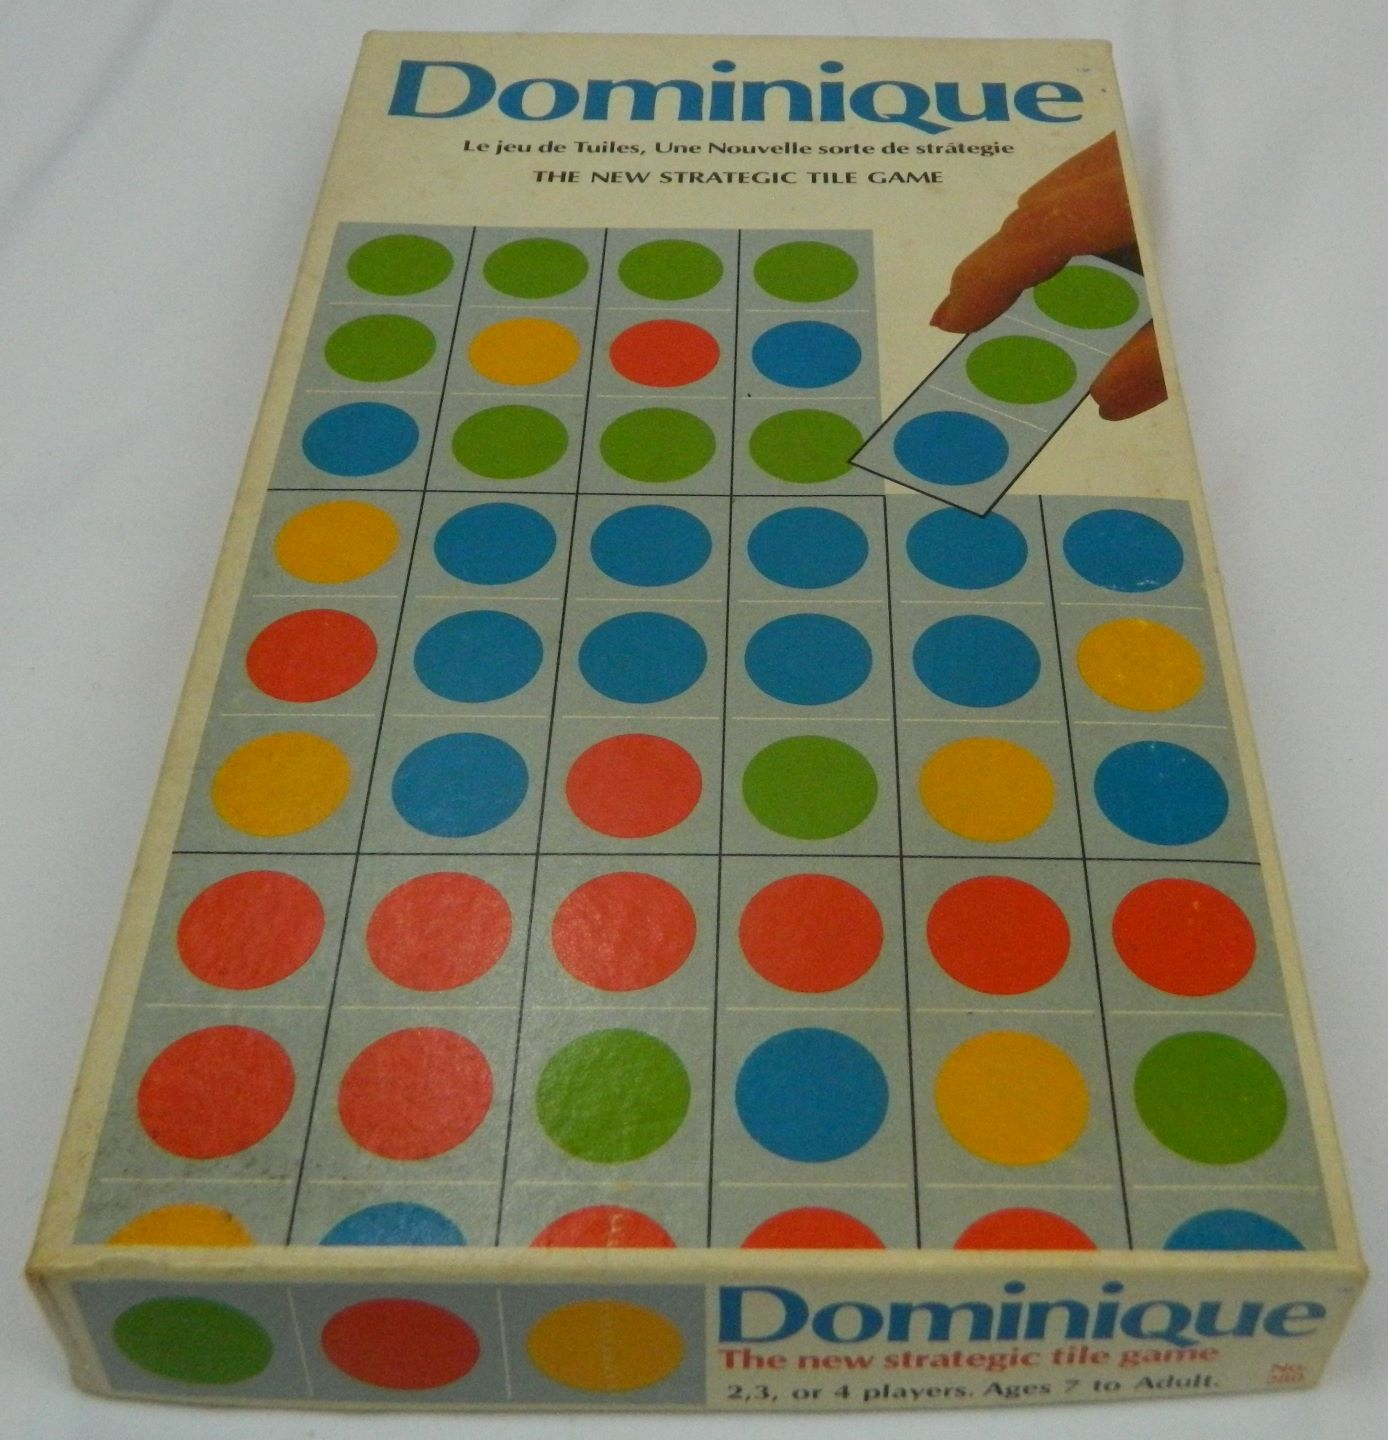 Box for Dominique